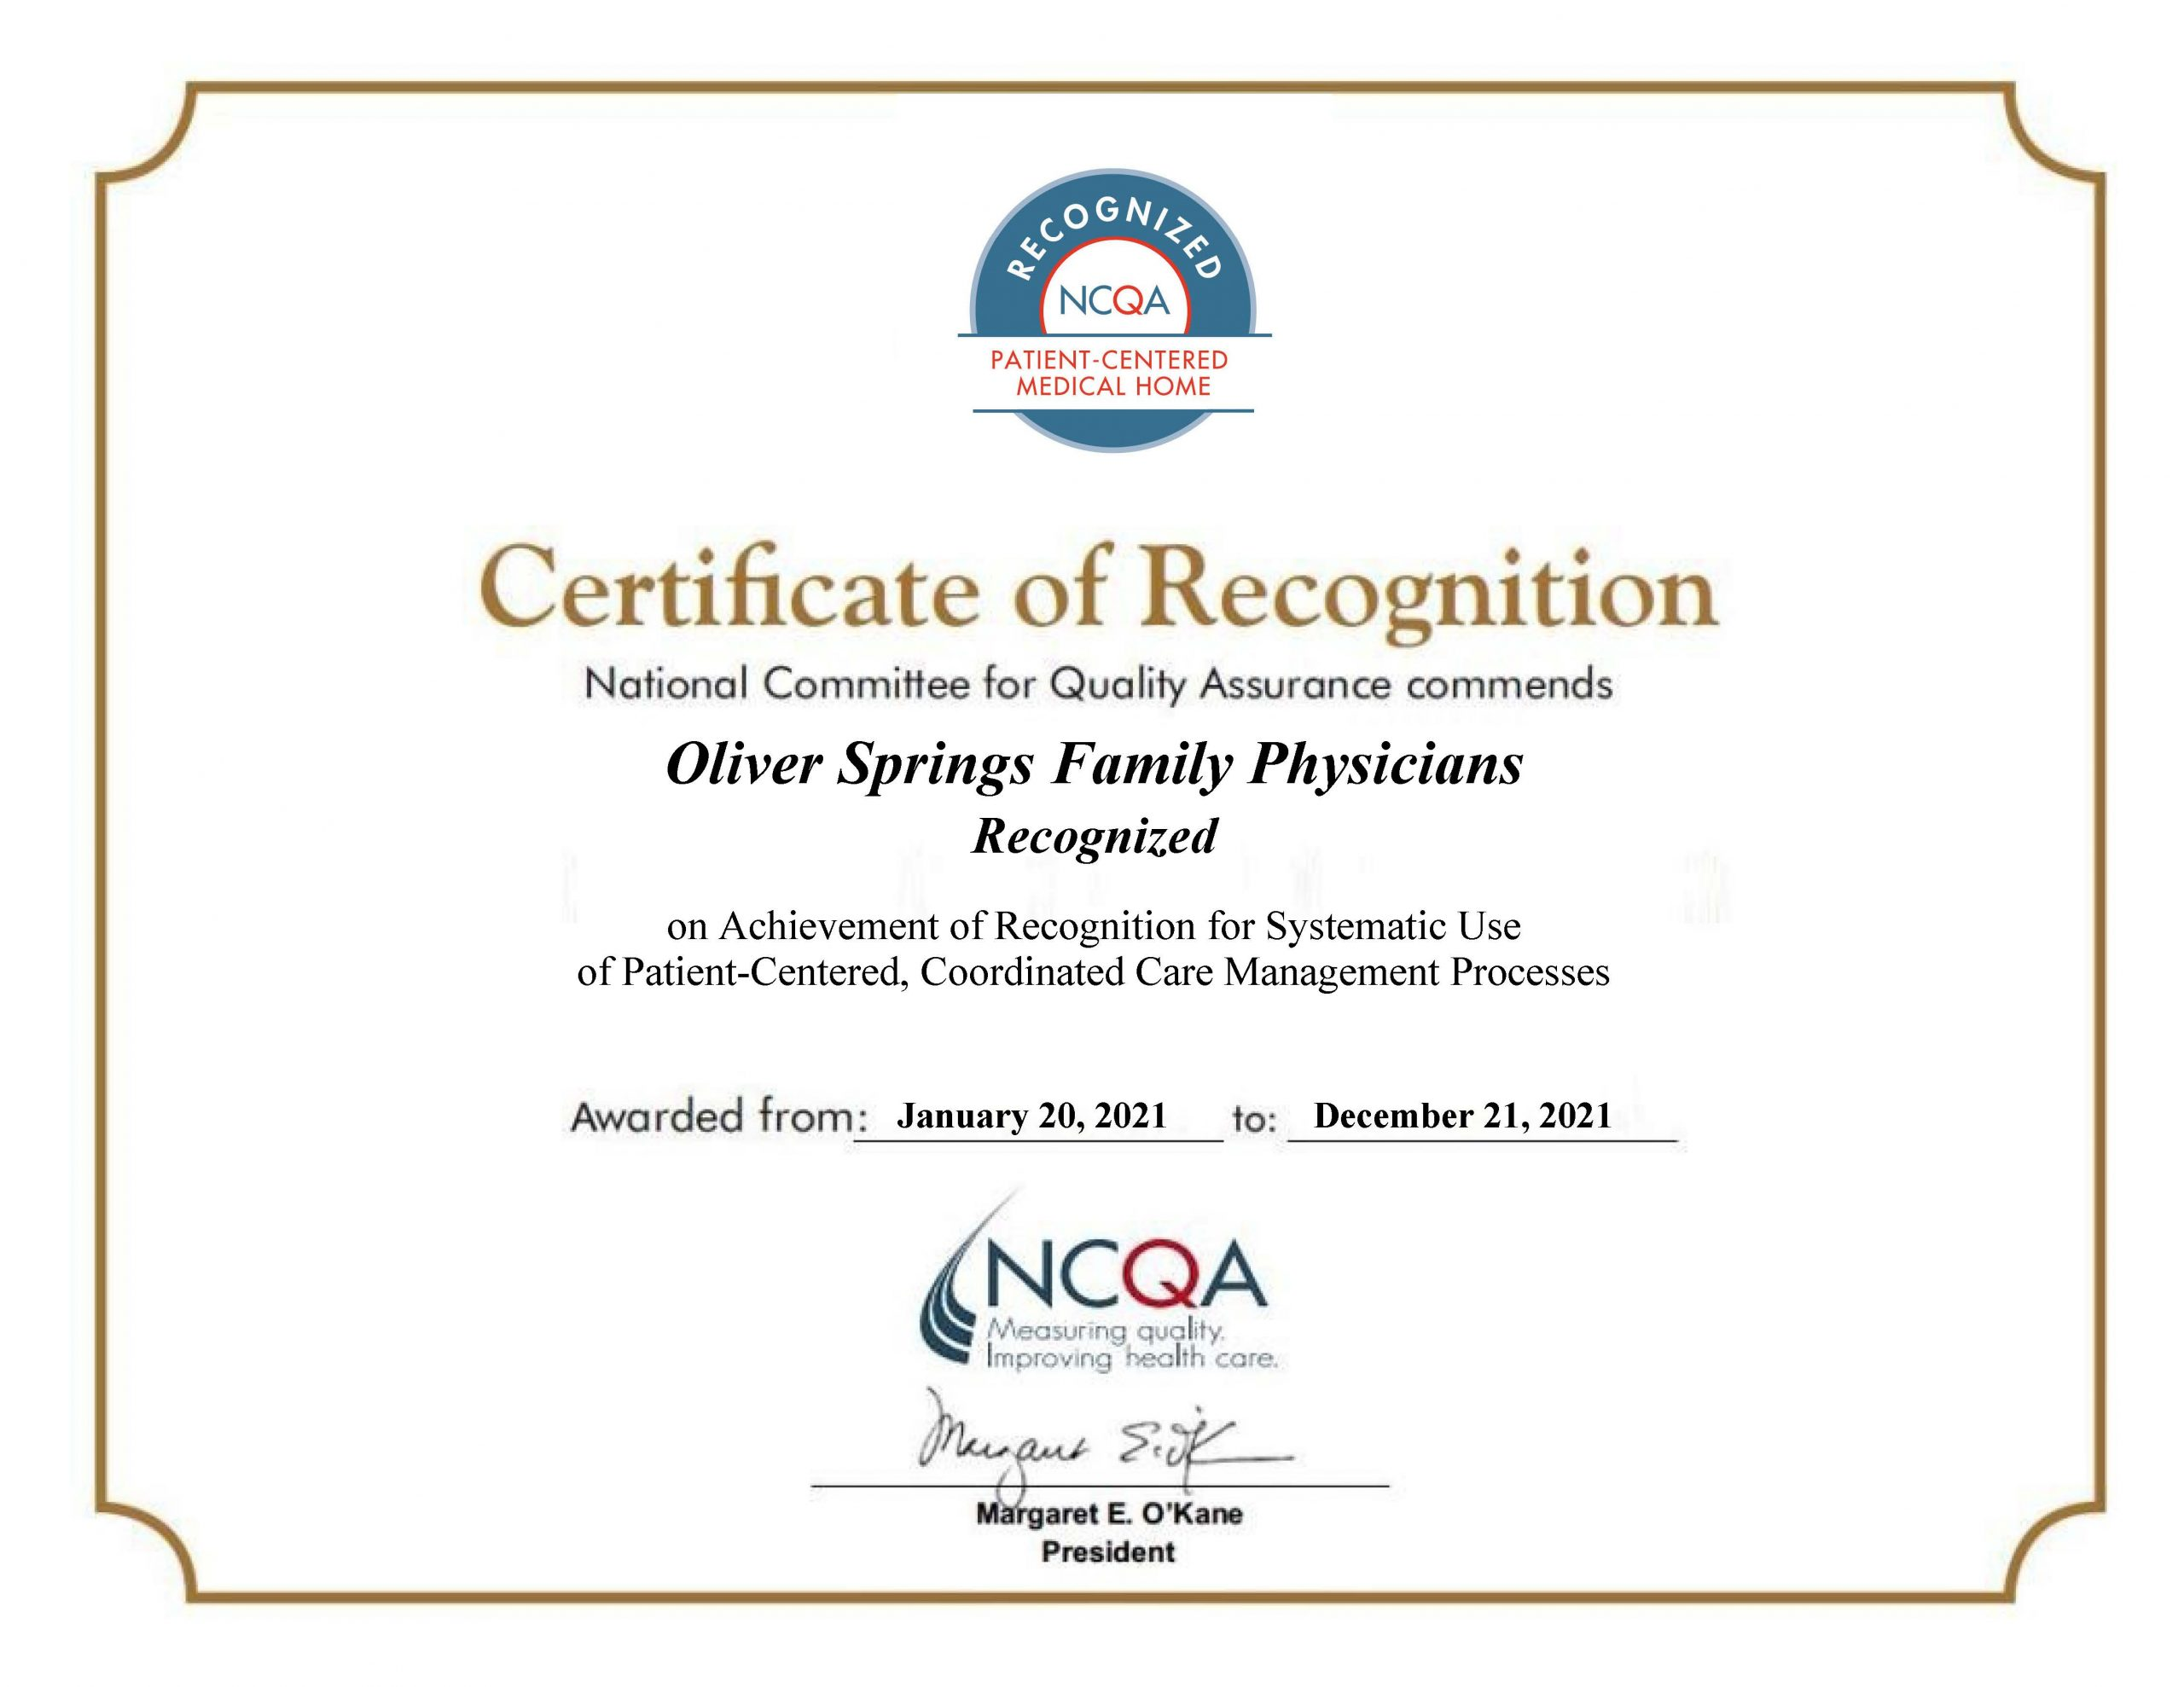 Oliver Springs Family Physicians Recognized as PCMH